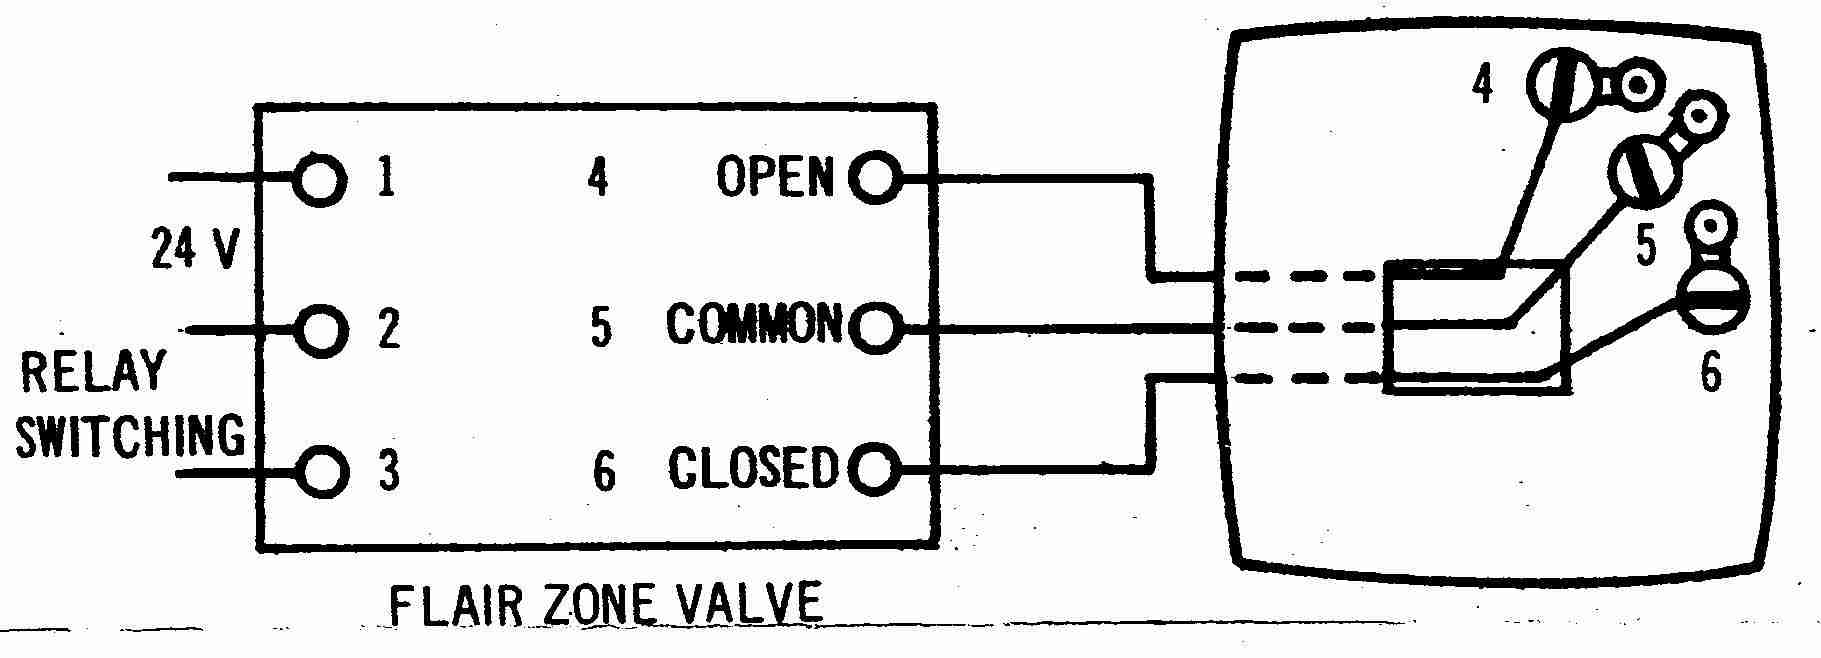 Room Thermostat Wiring Diagrams For Hvac Systems Honeywell Diagram Flair 3 Wire Controlling A Zone Valve